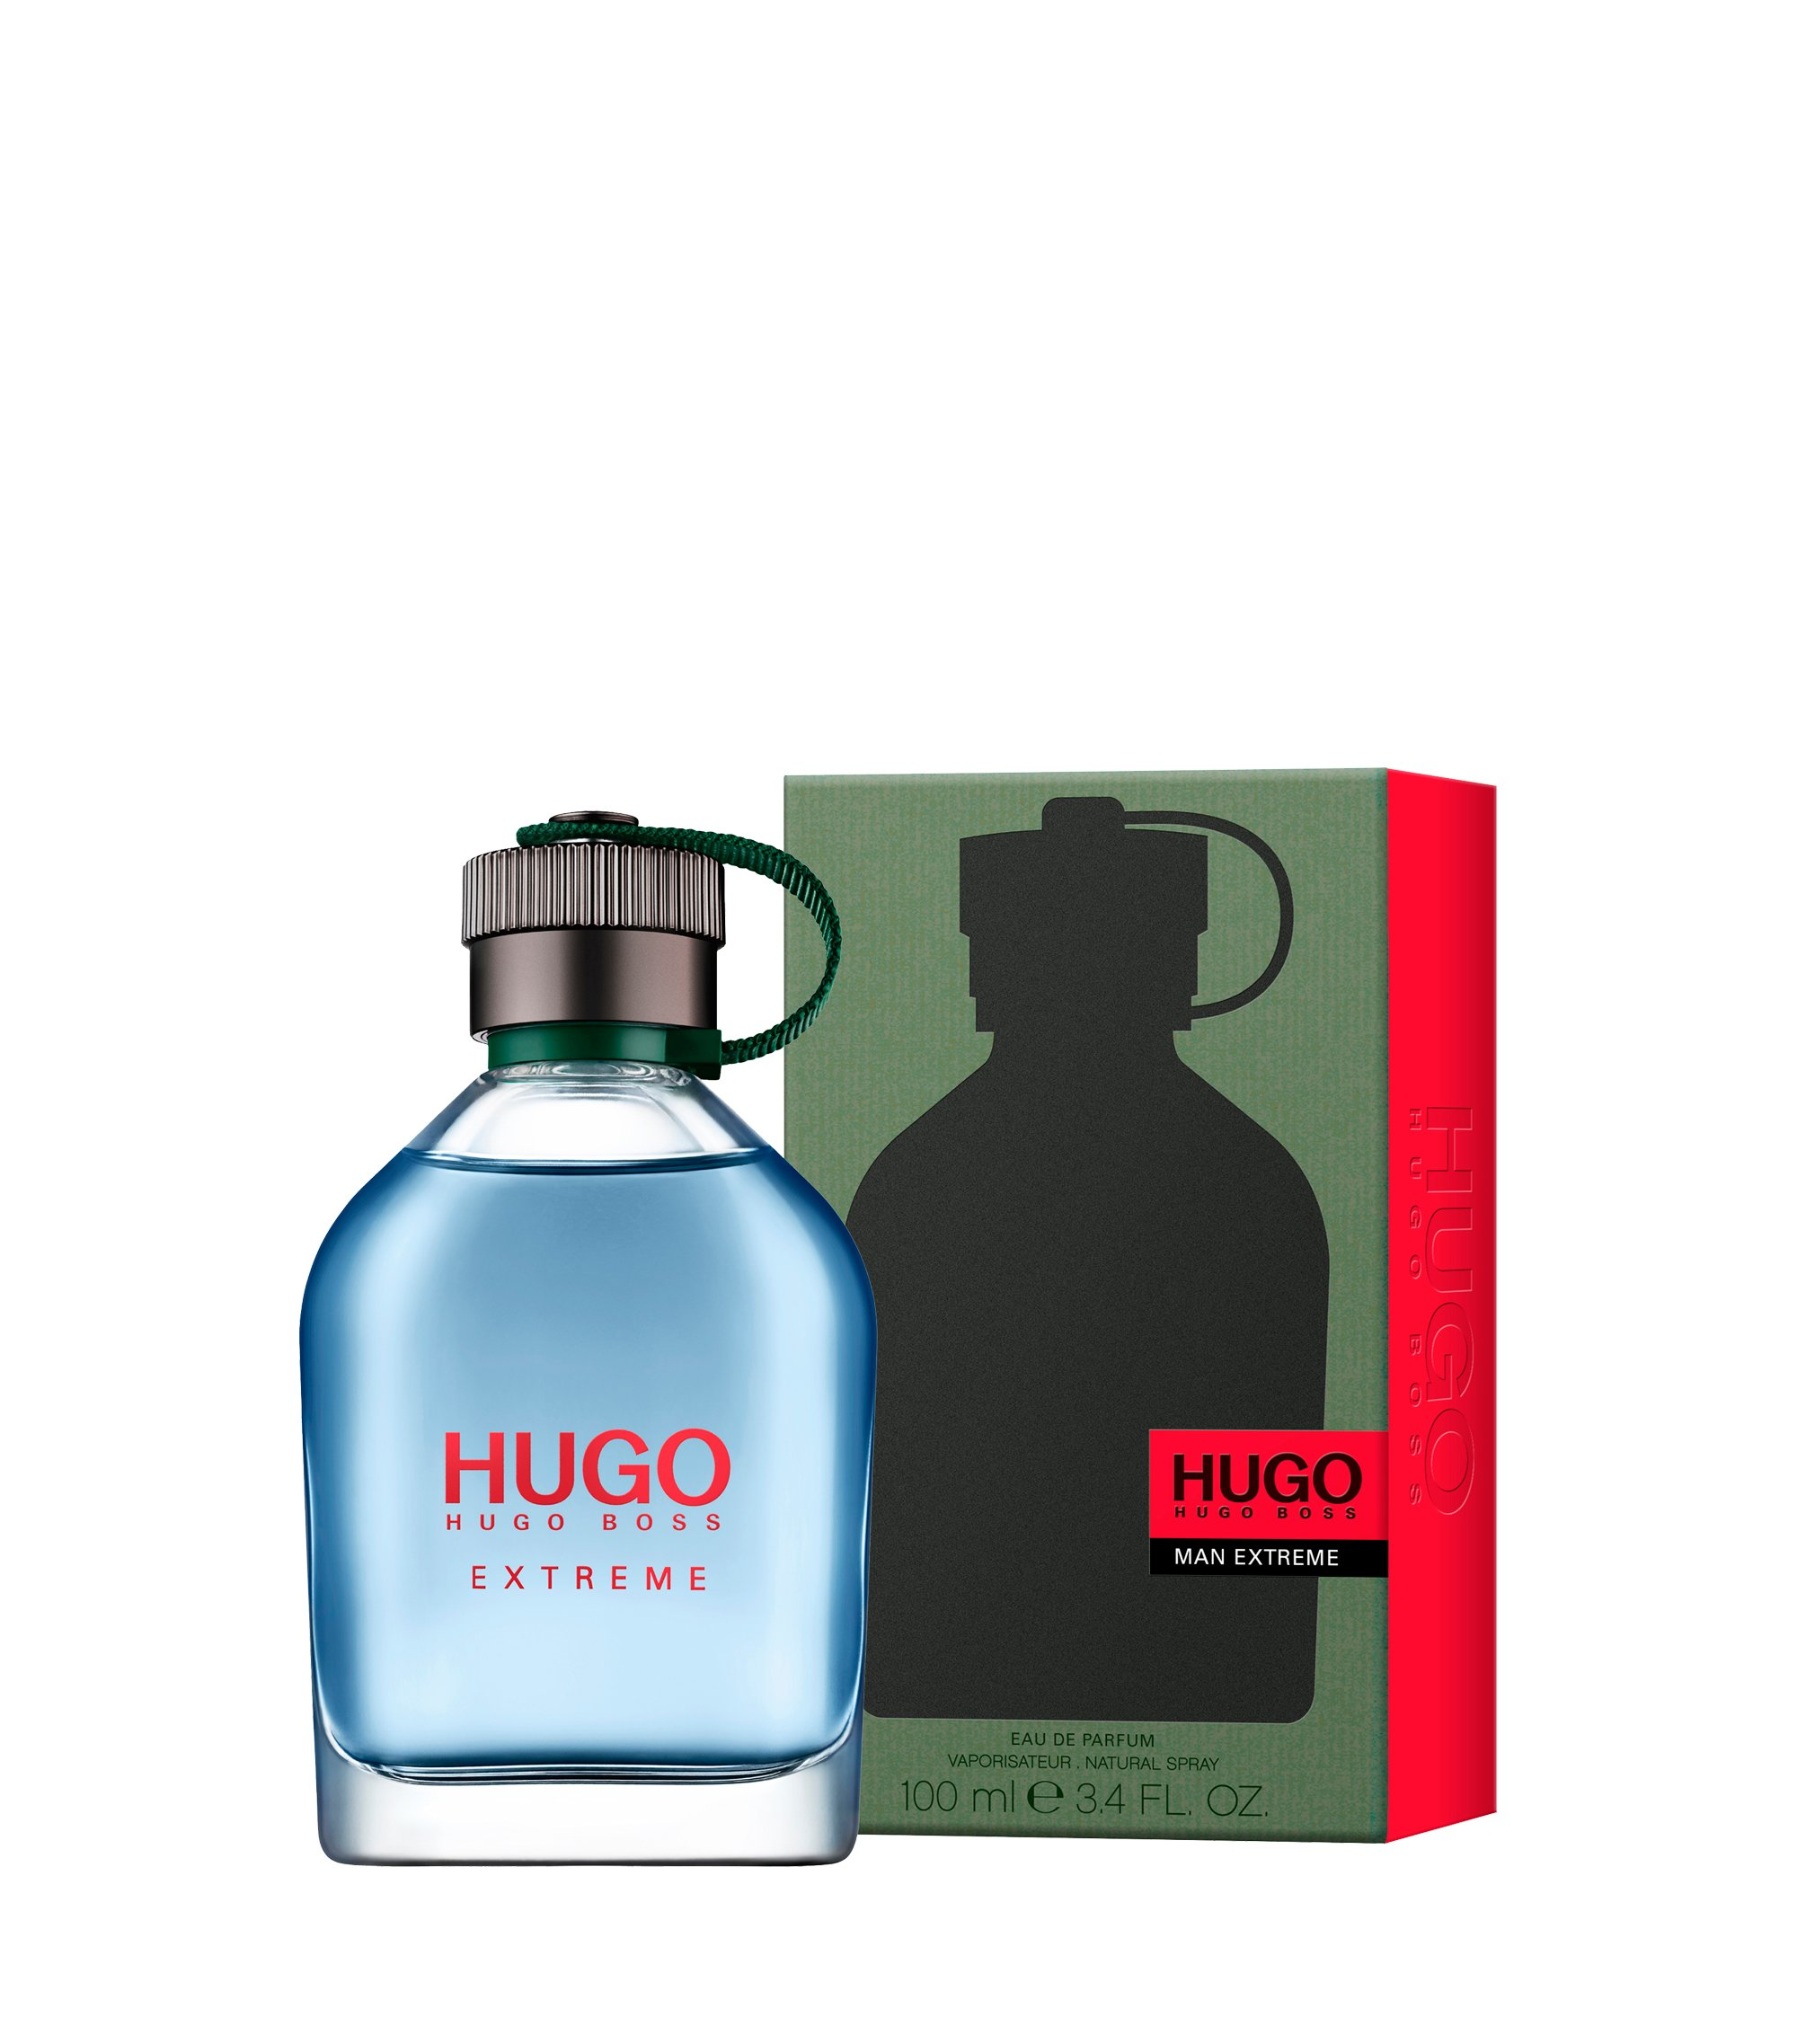 Eau de parfum HUGO Man Extreme de 100 ml, Assorted-Pre-Pack